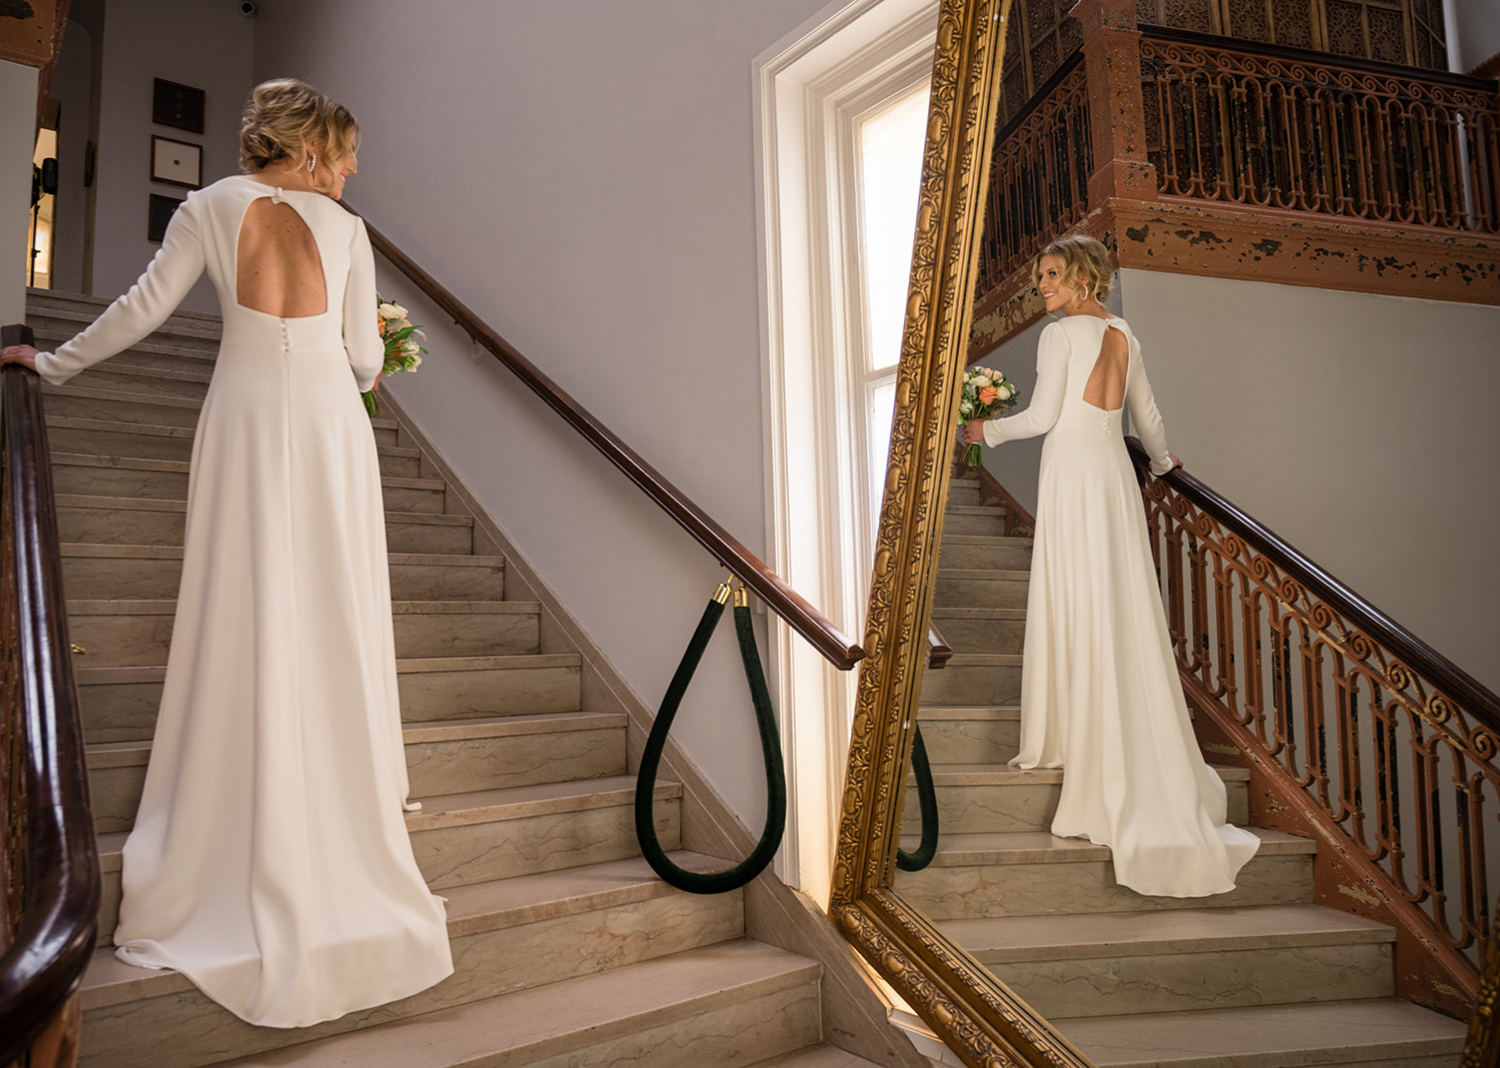 bride smiling as she looks at herself in the mirror